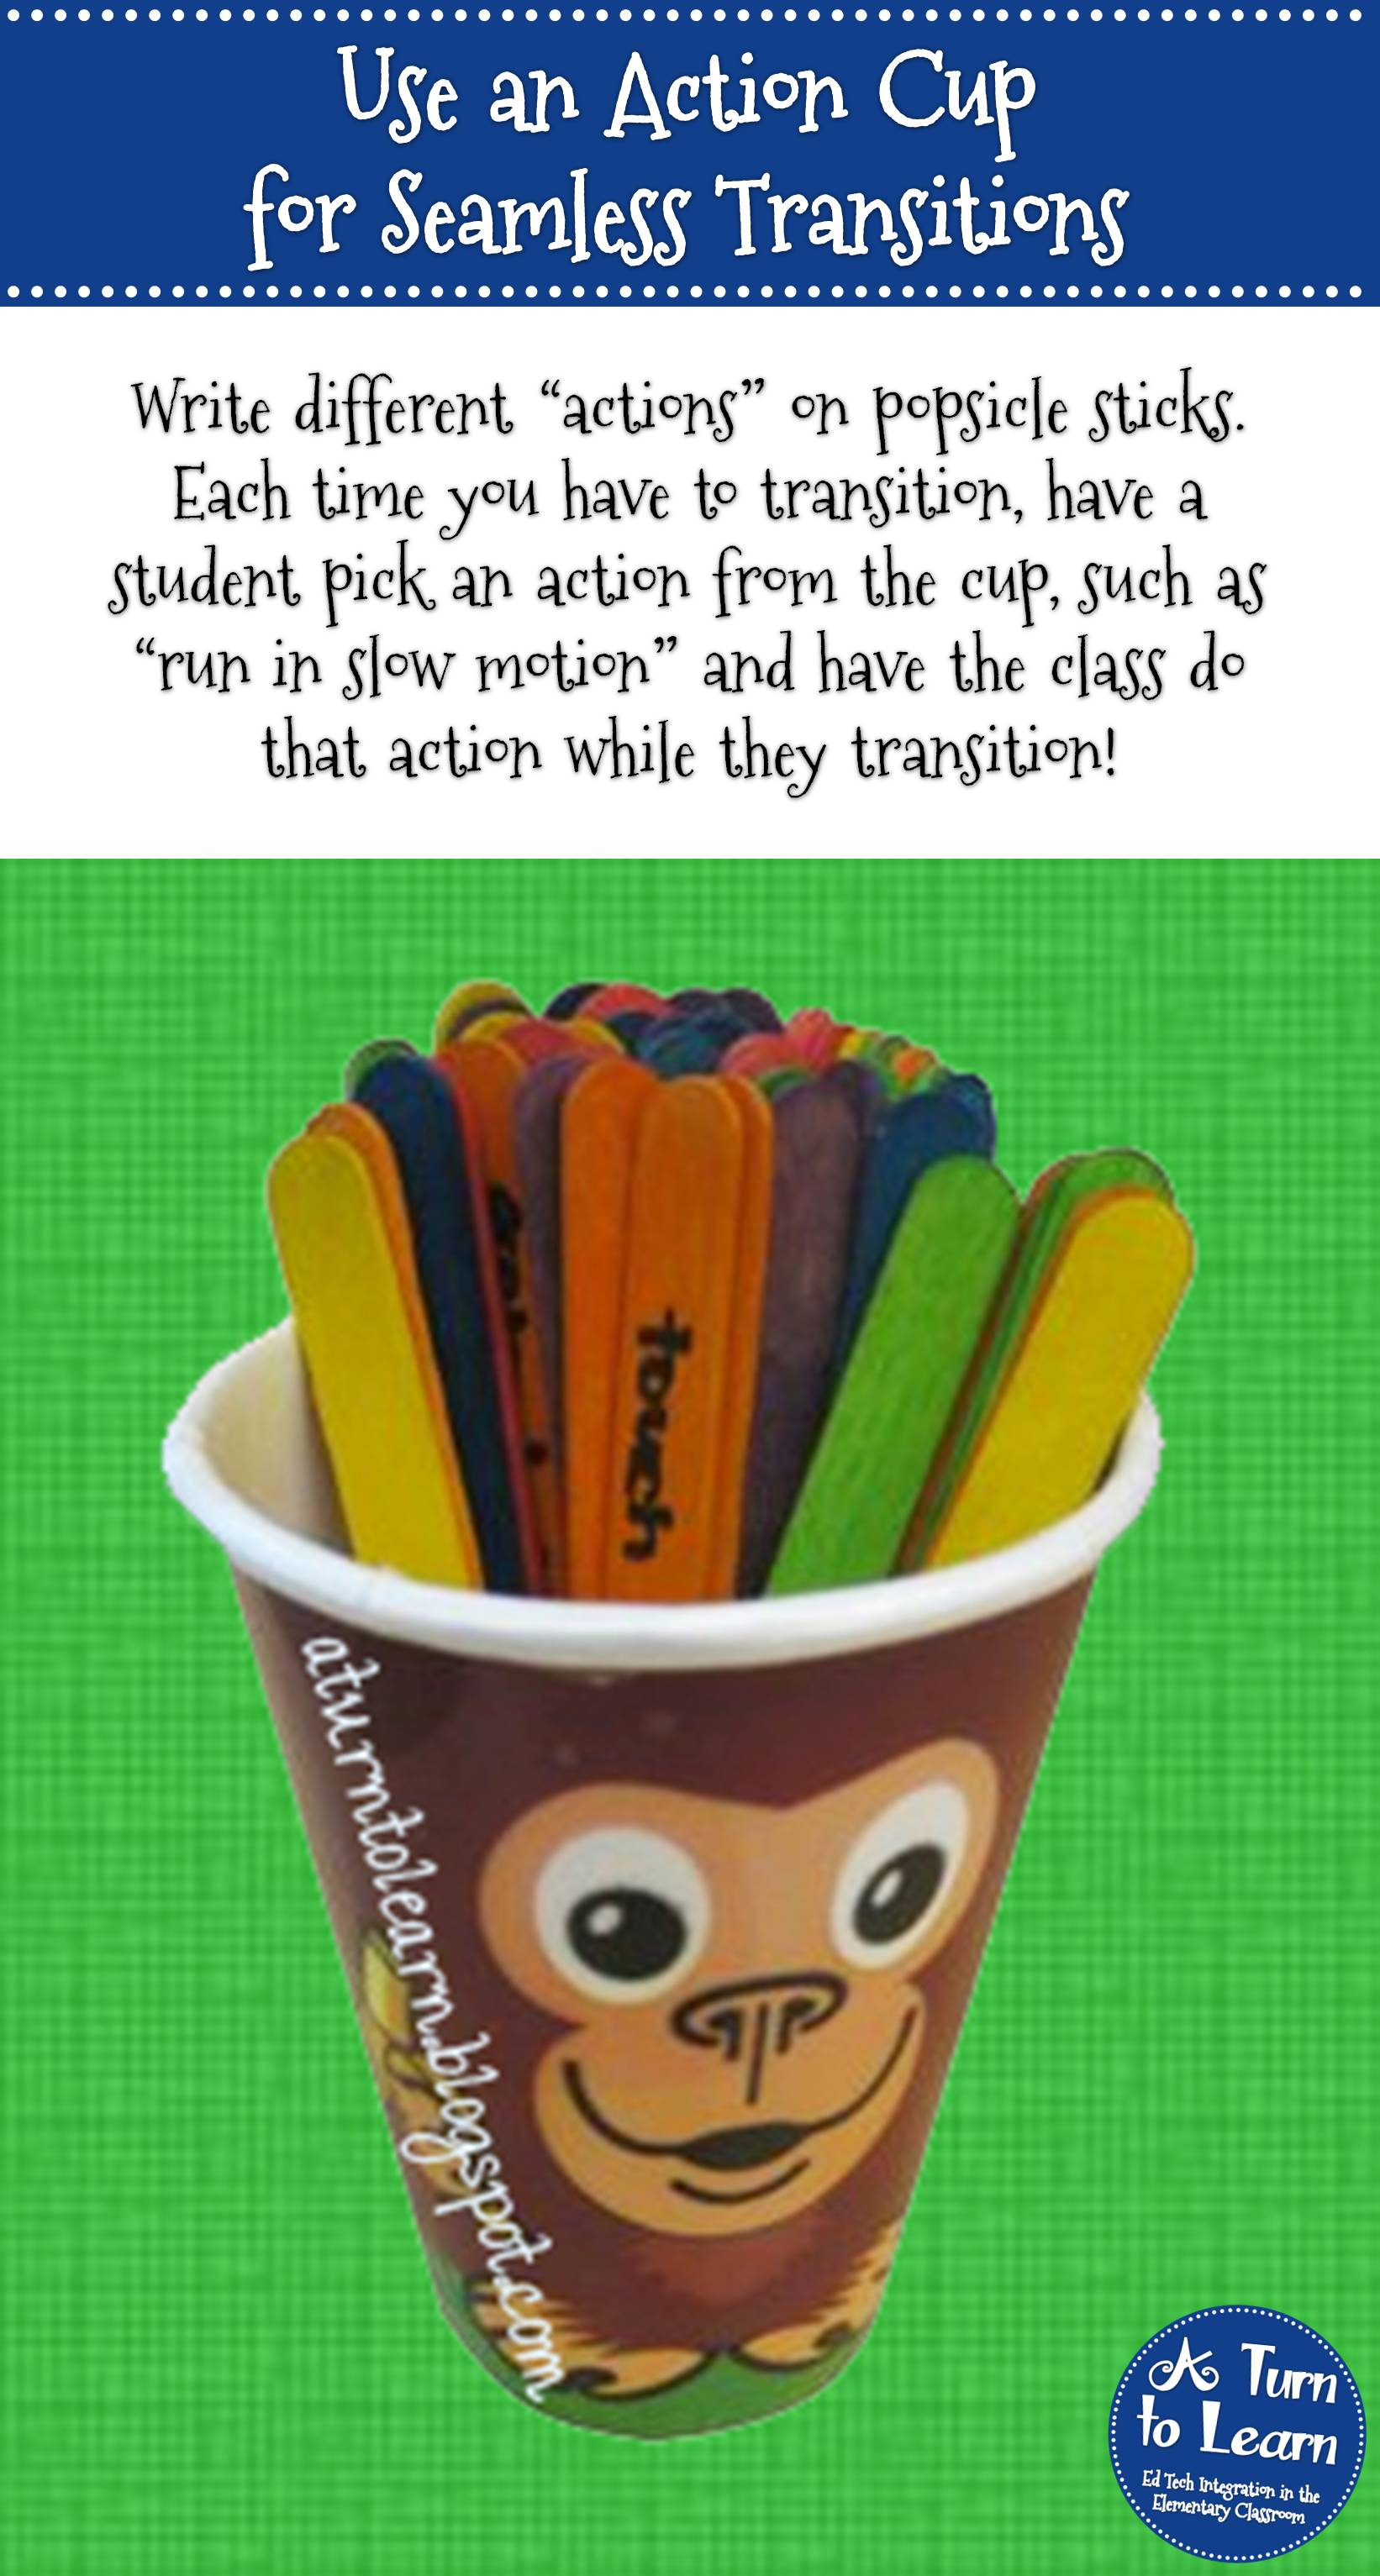 Use an Action Cup for Seamless Classroom Transitions in Kindergarten